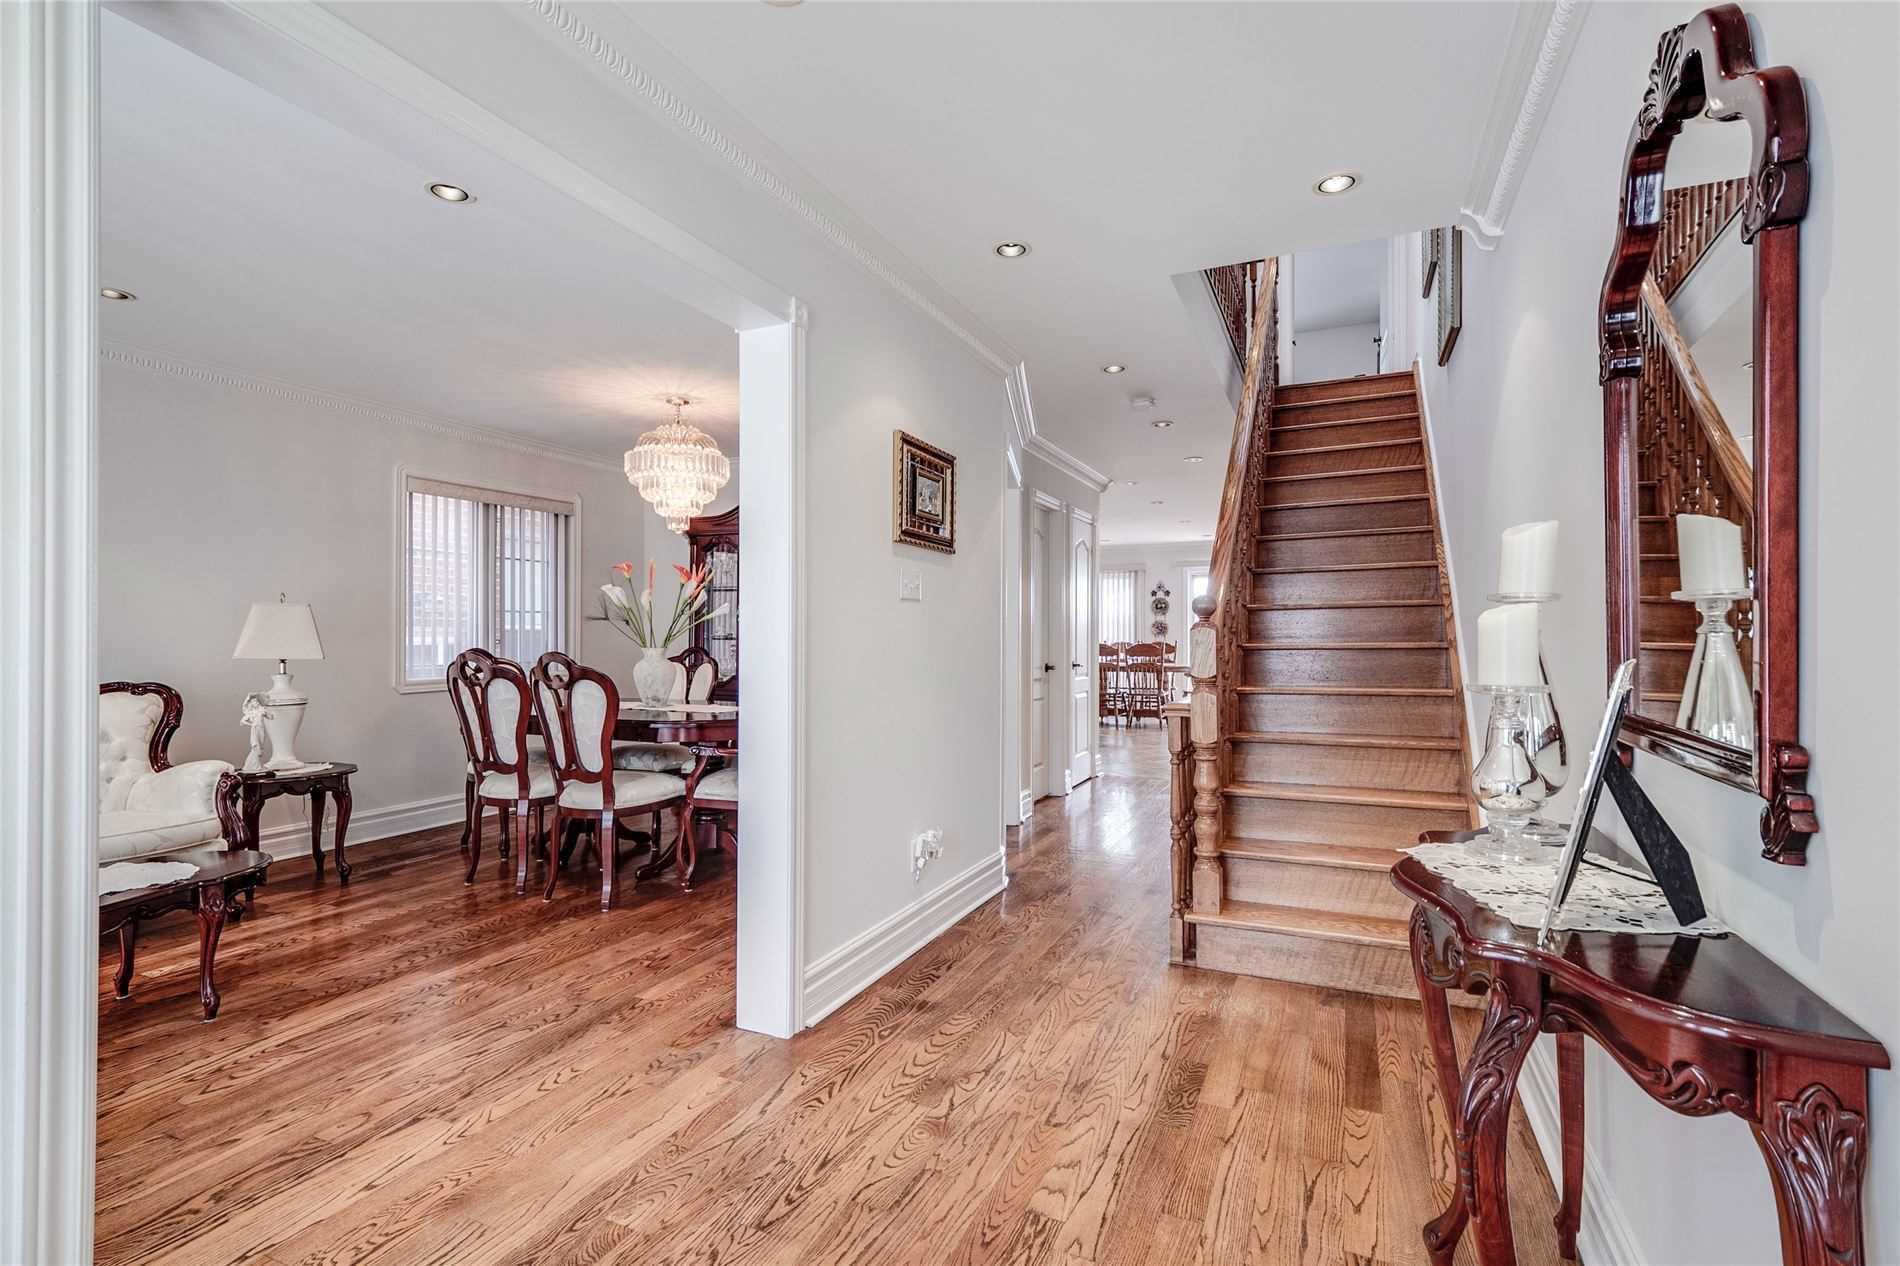 68 Sellers Ave (14)